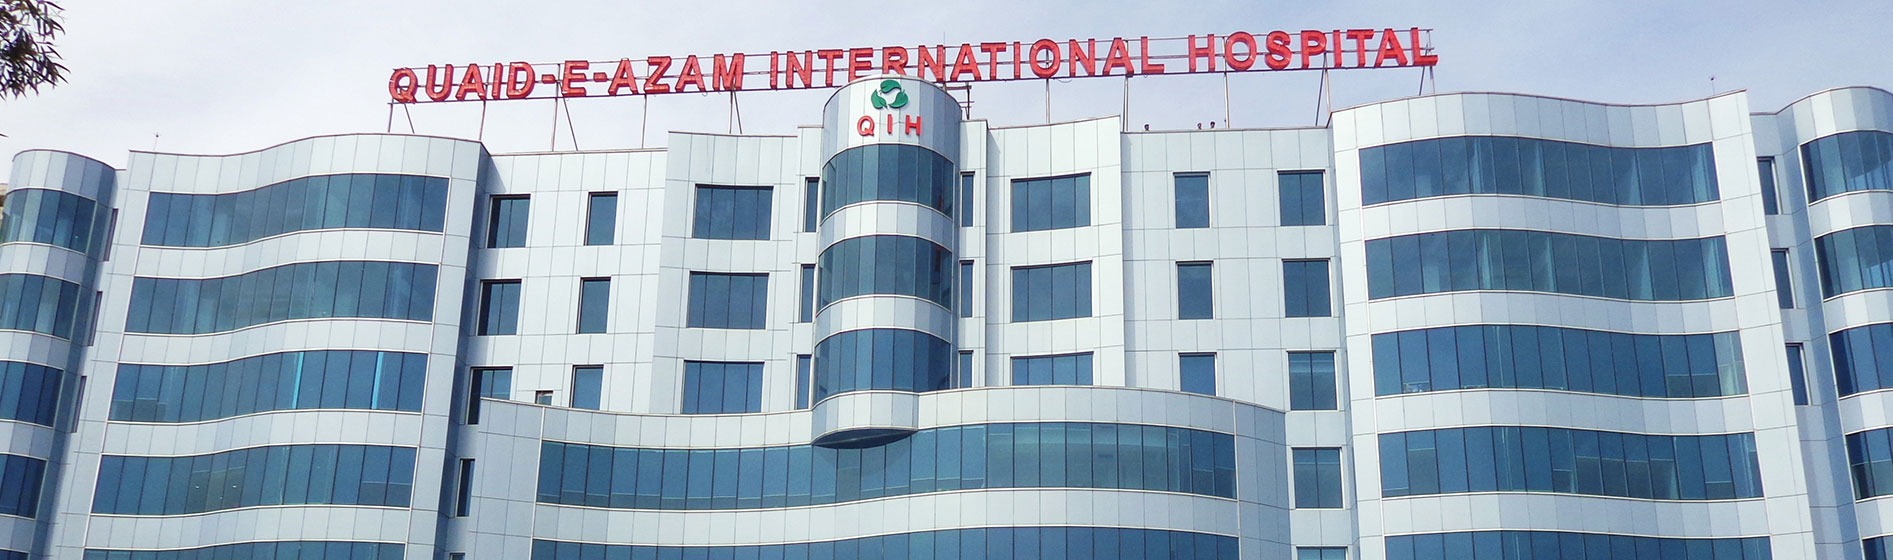 Quaid-e-Azam International Hospital